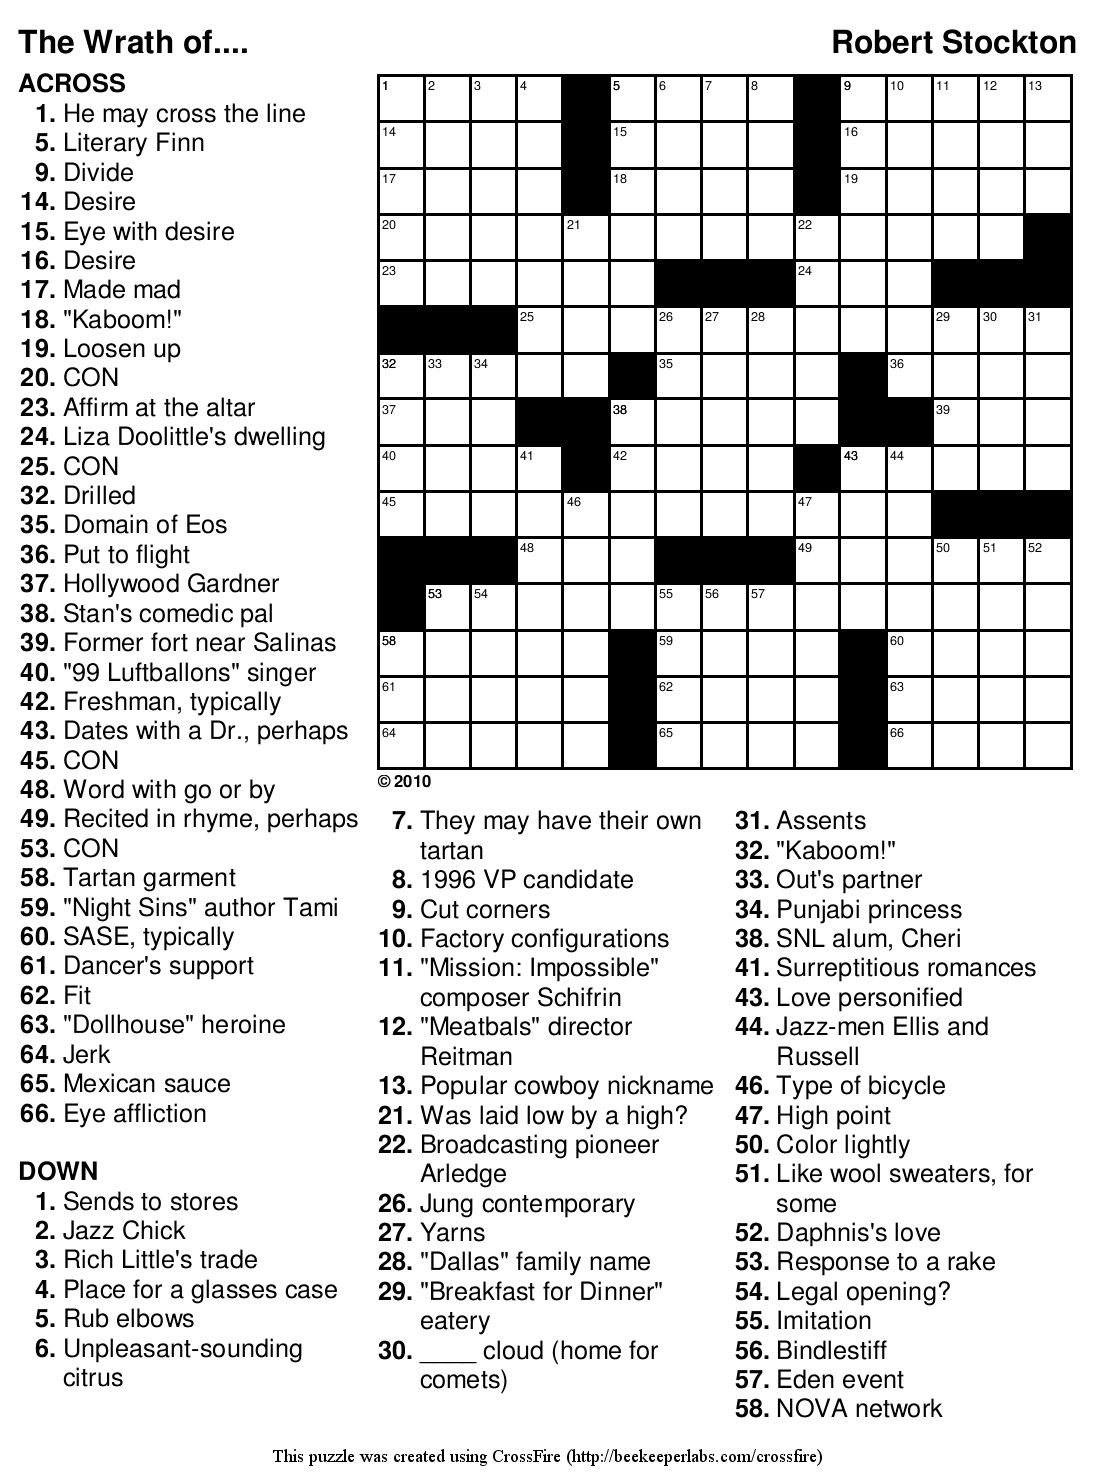 Marvelous Crossword Puzzles Easy Printable Free Org | Chas's Board - Printable Crossword Puzzles For Adults Easy